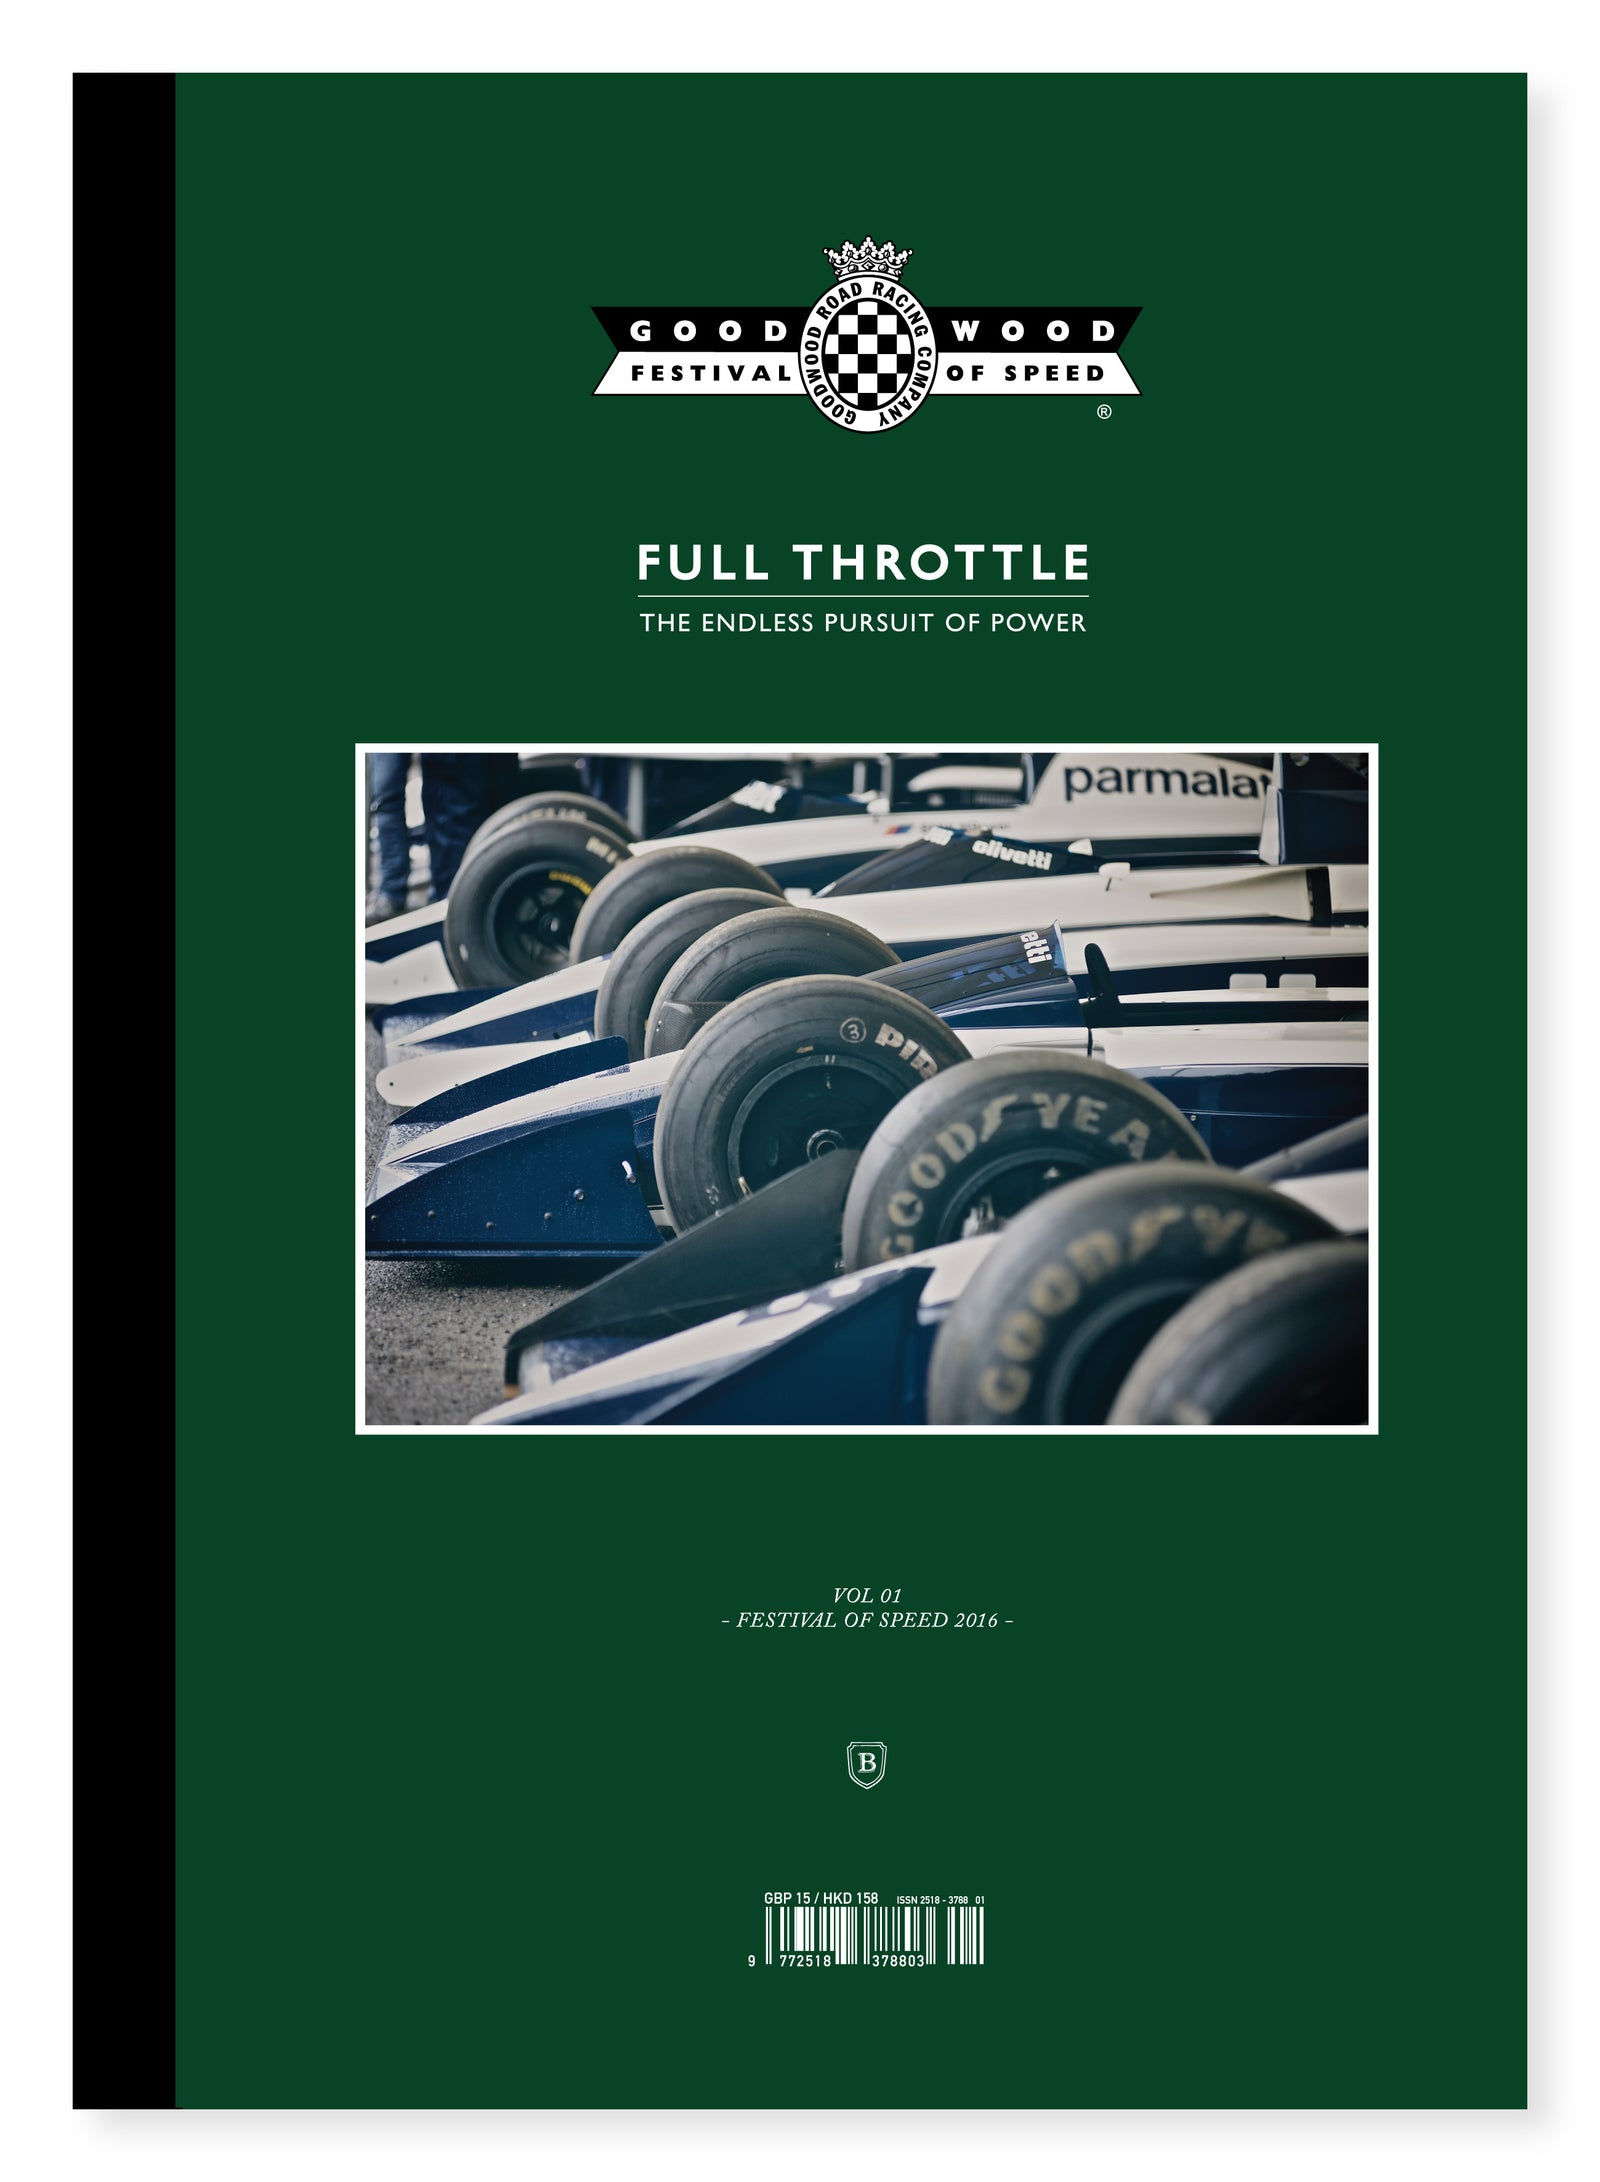 GOODWOOD VOL 01: FULL THROTTLE